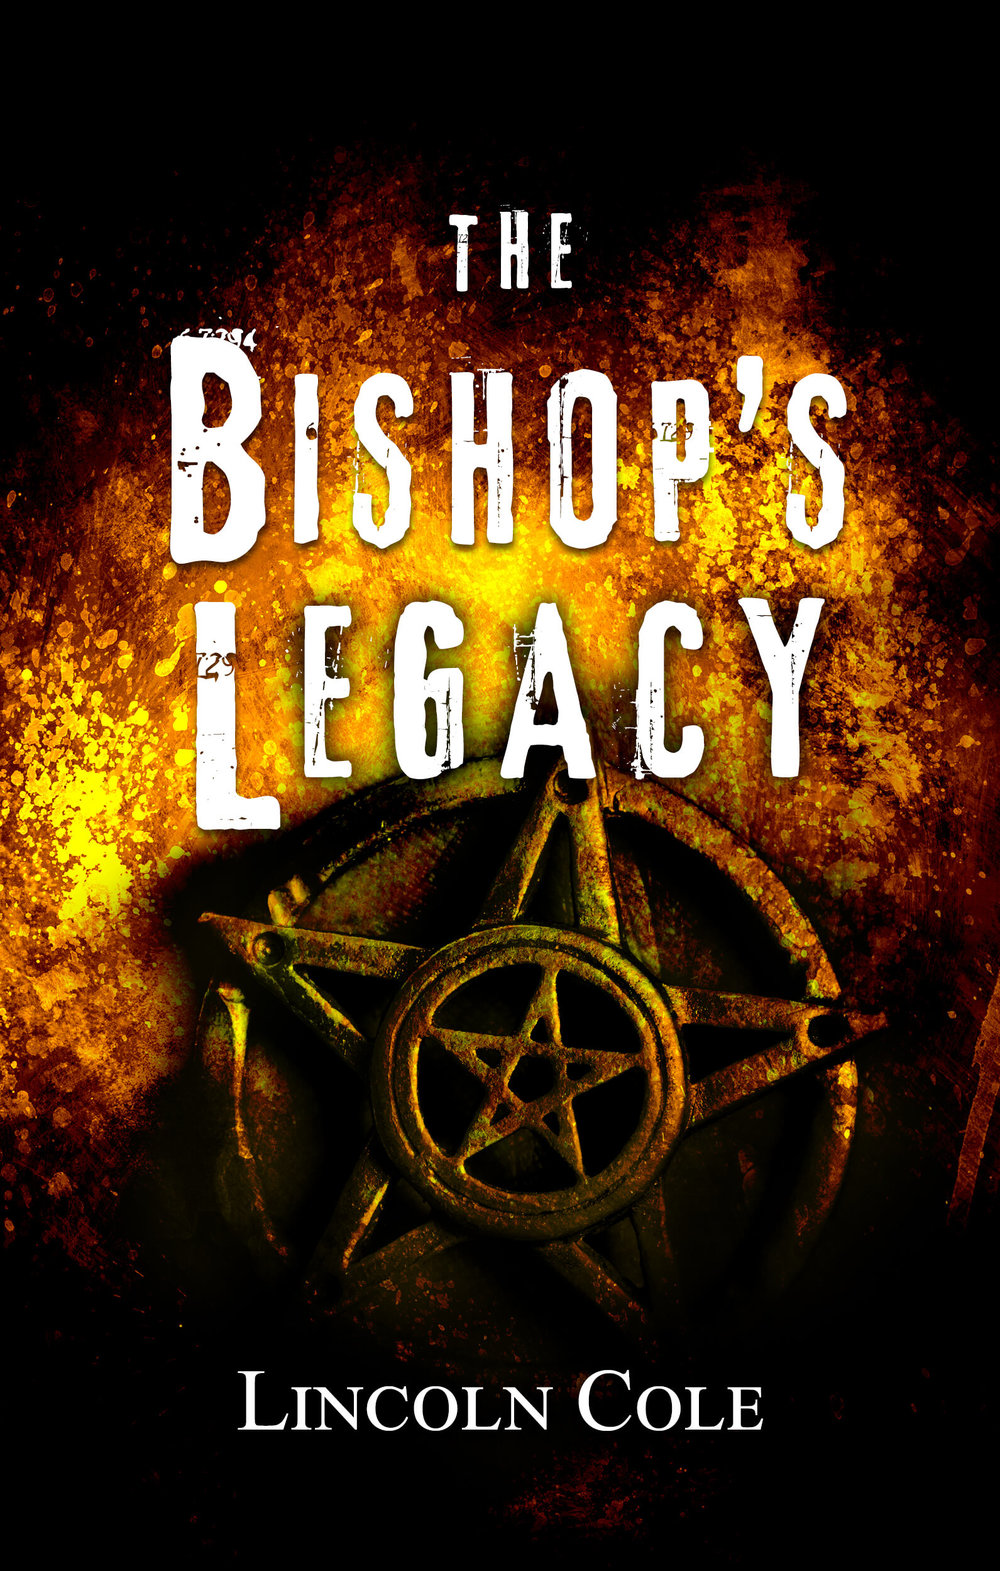 The Bishop's Legacy - Everything is falling apart for Niccolo Paladina as his mistakes come back to haunt him. He's been reminded once more that the shadowy world in which Arthur inhabits is not his own.He is ready to face the consequences for his actions, but not until he has dealt with the threat he's helped to create. Things are getting desperate, though, and they are worried that more people will be hurt before they can bring things to an end.